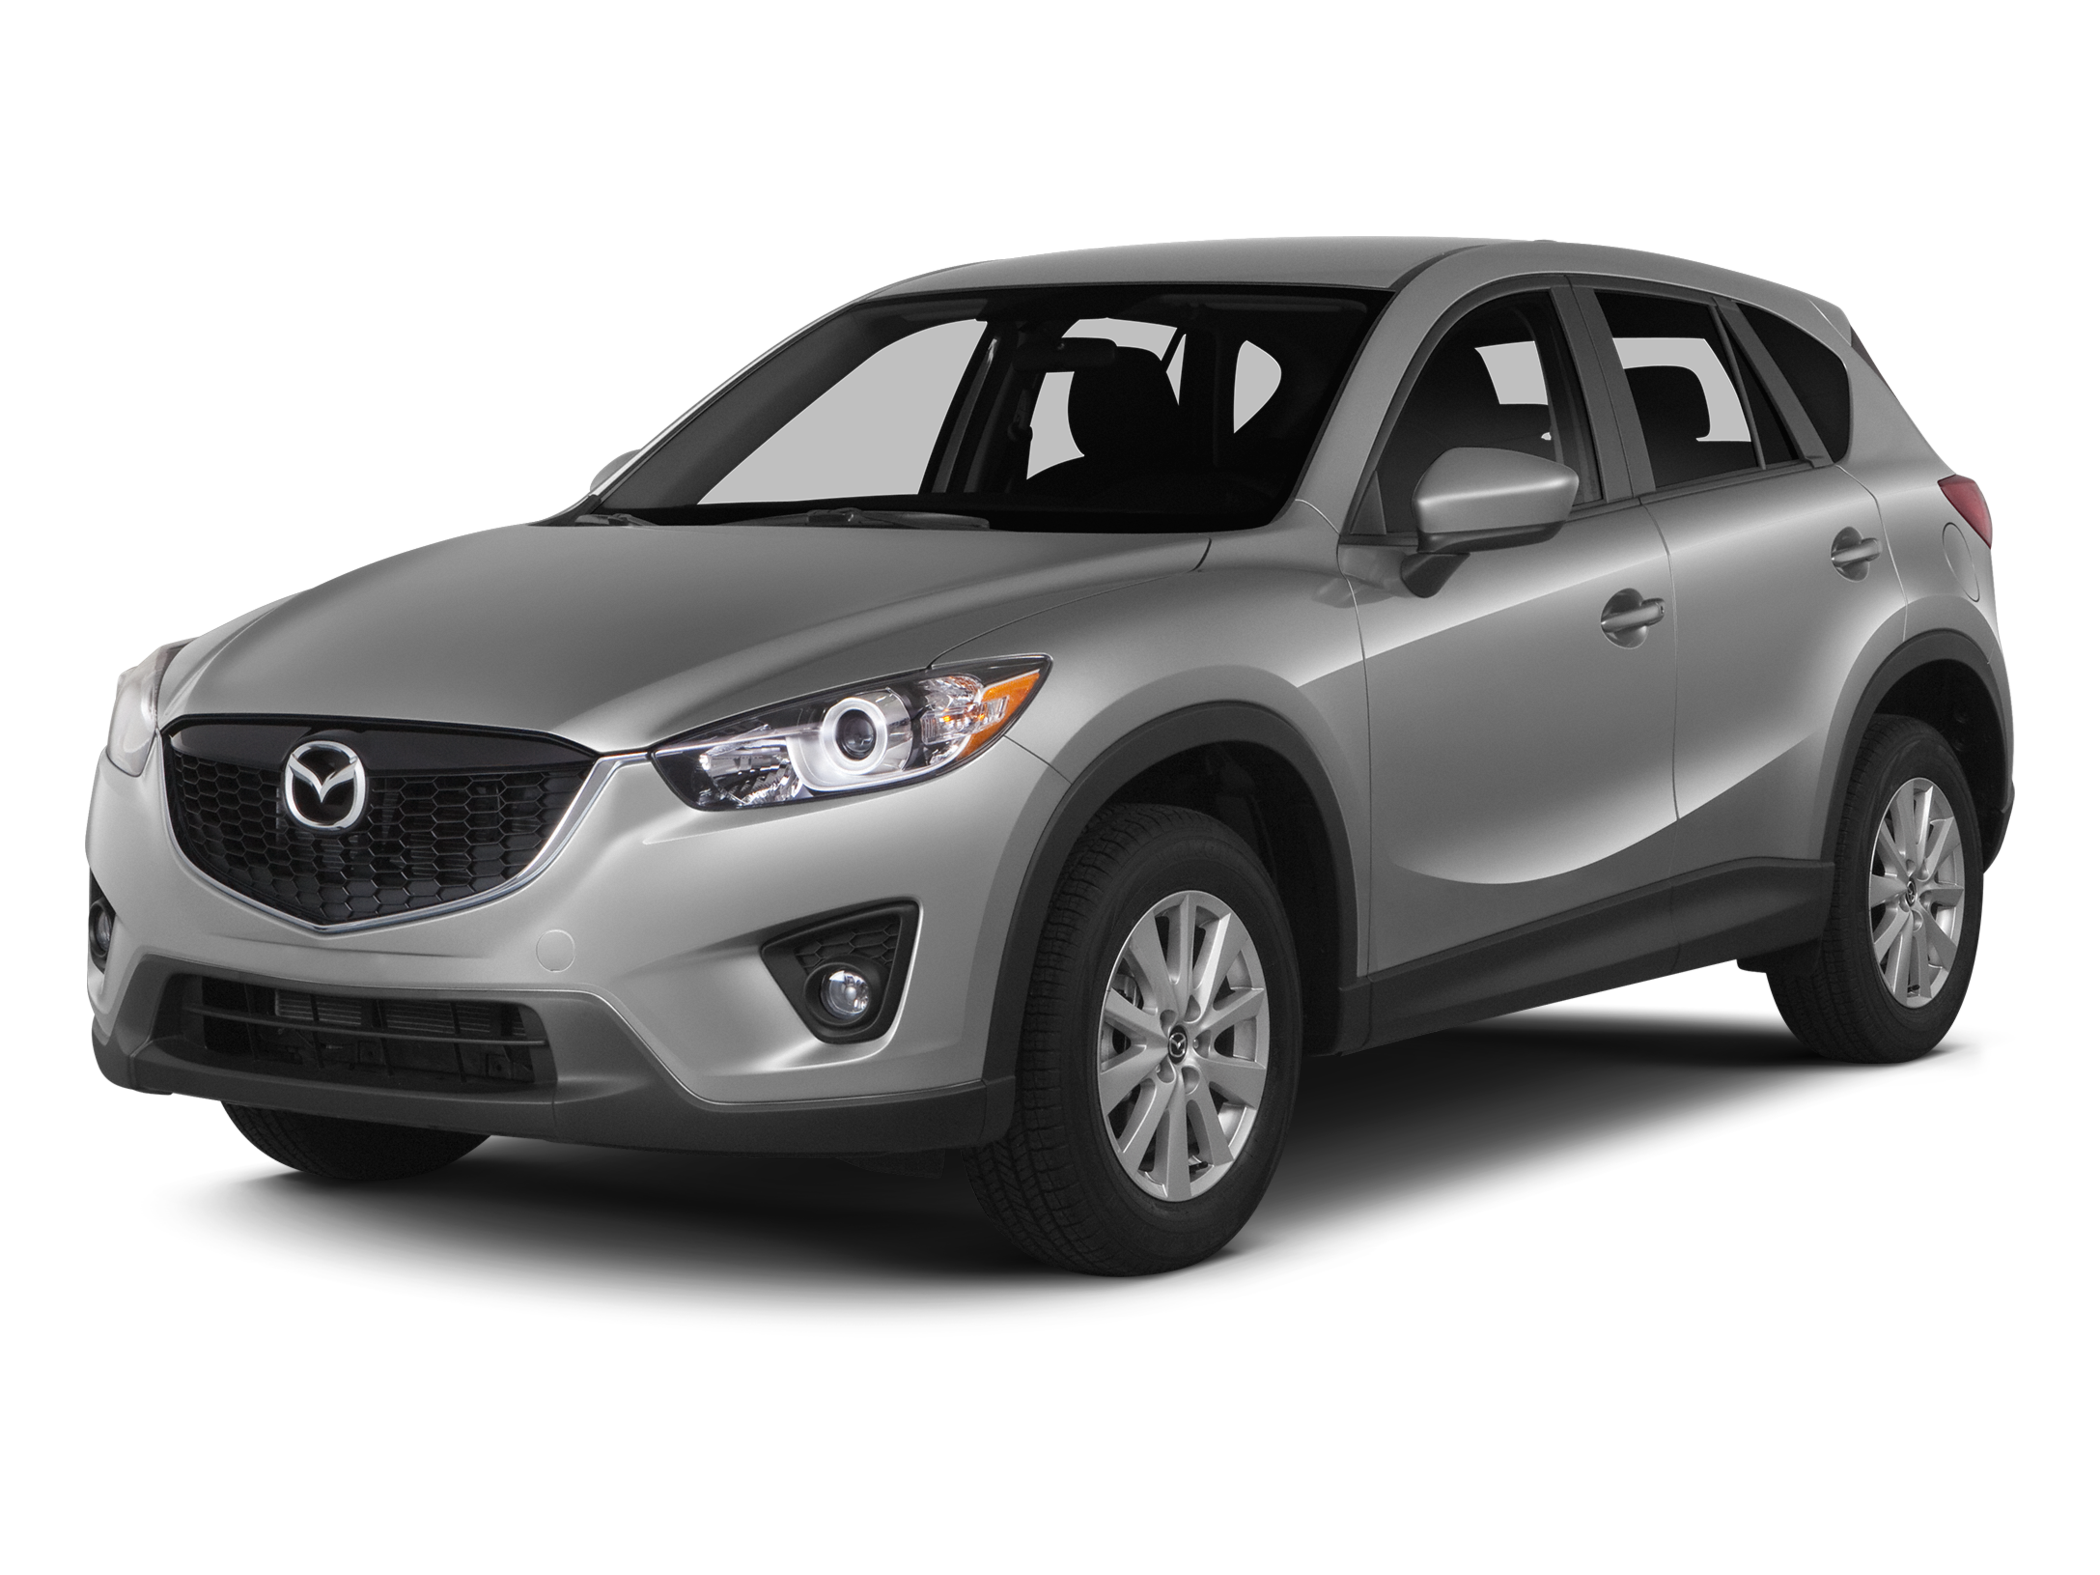 cx inside download vehicle page mazda